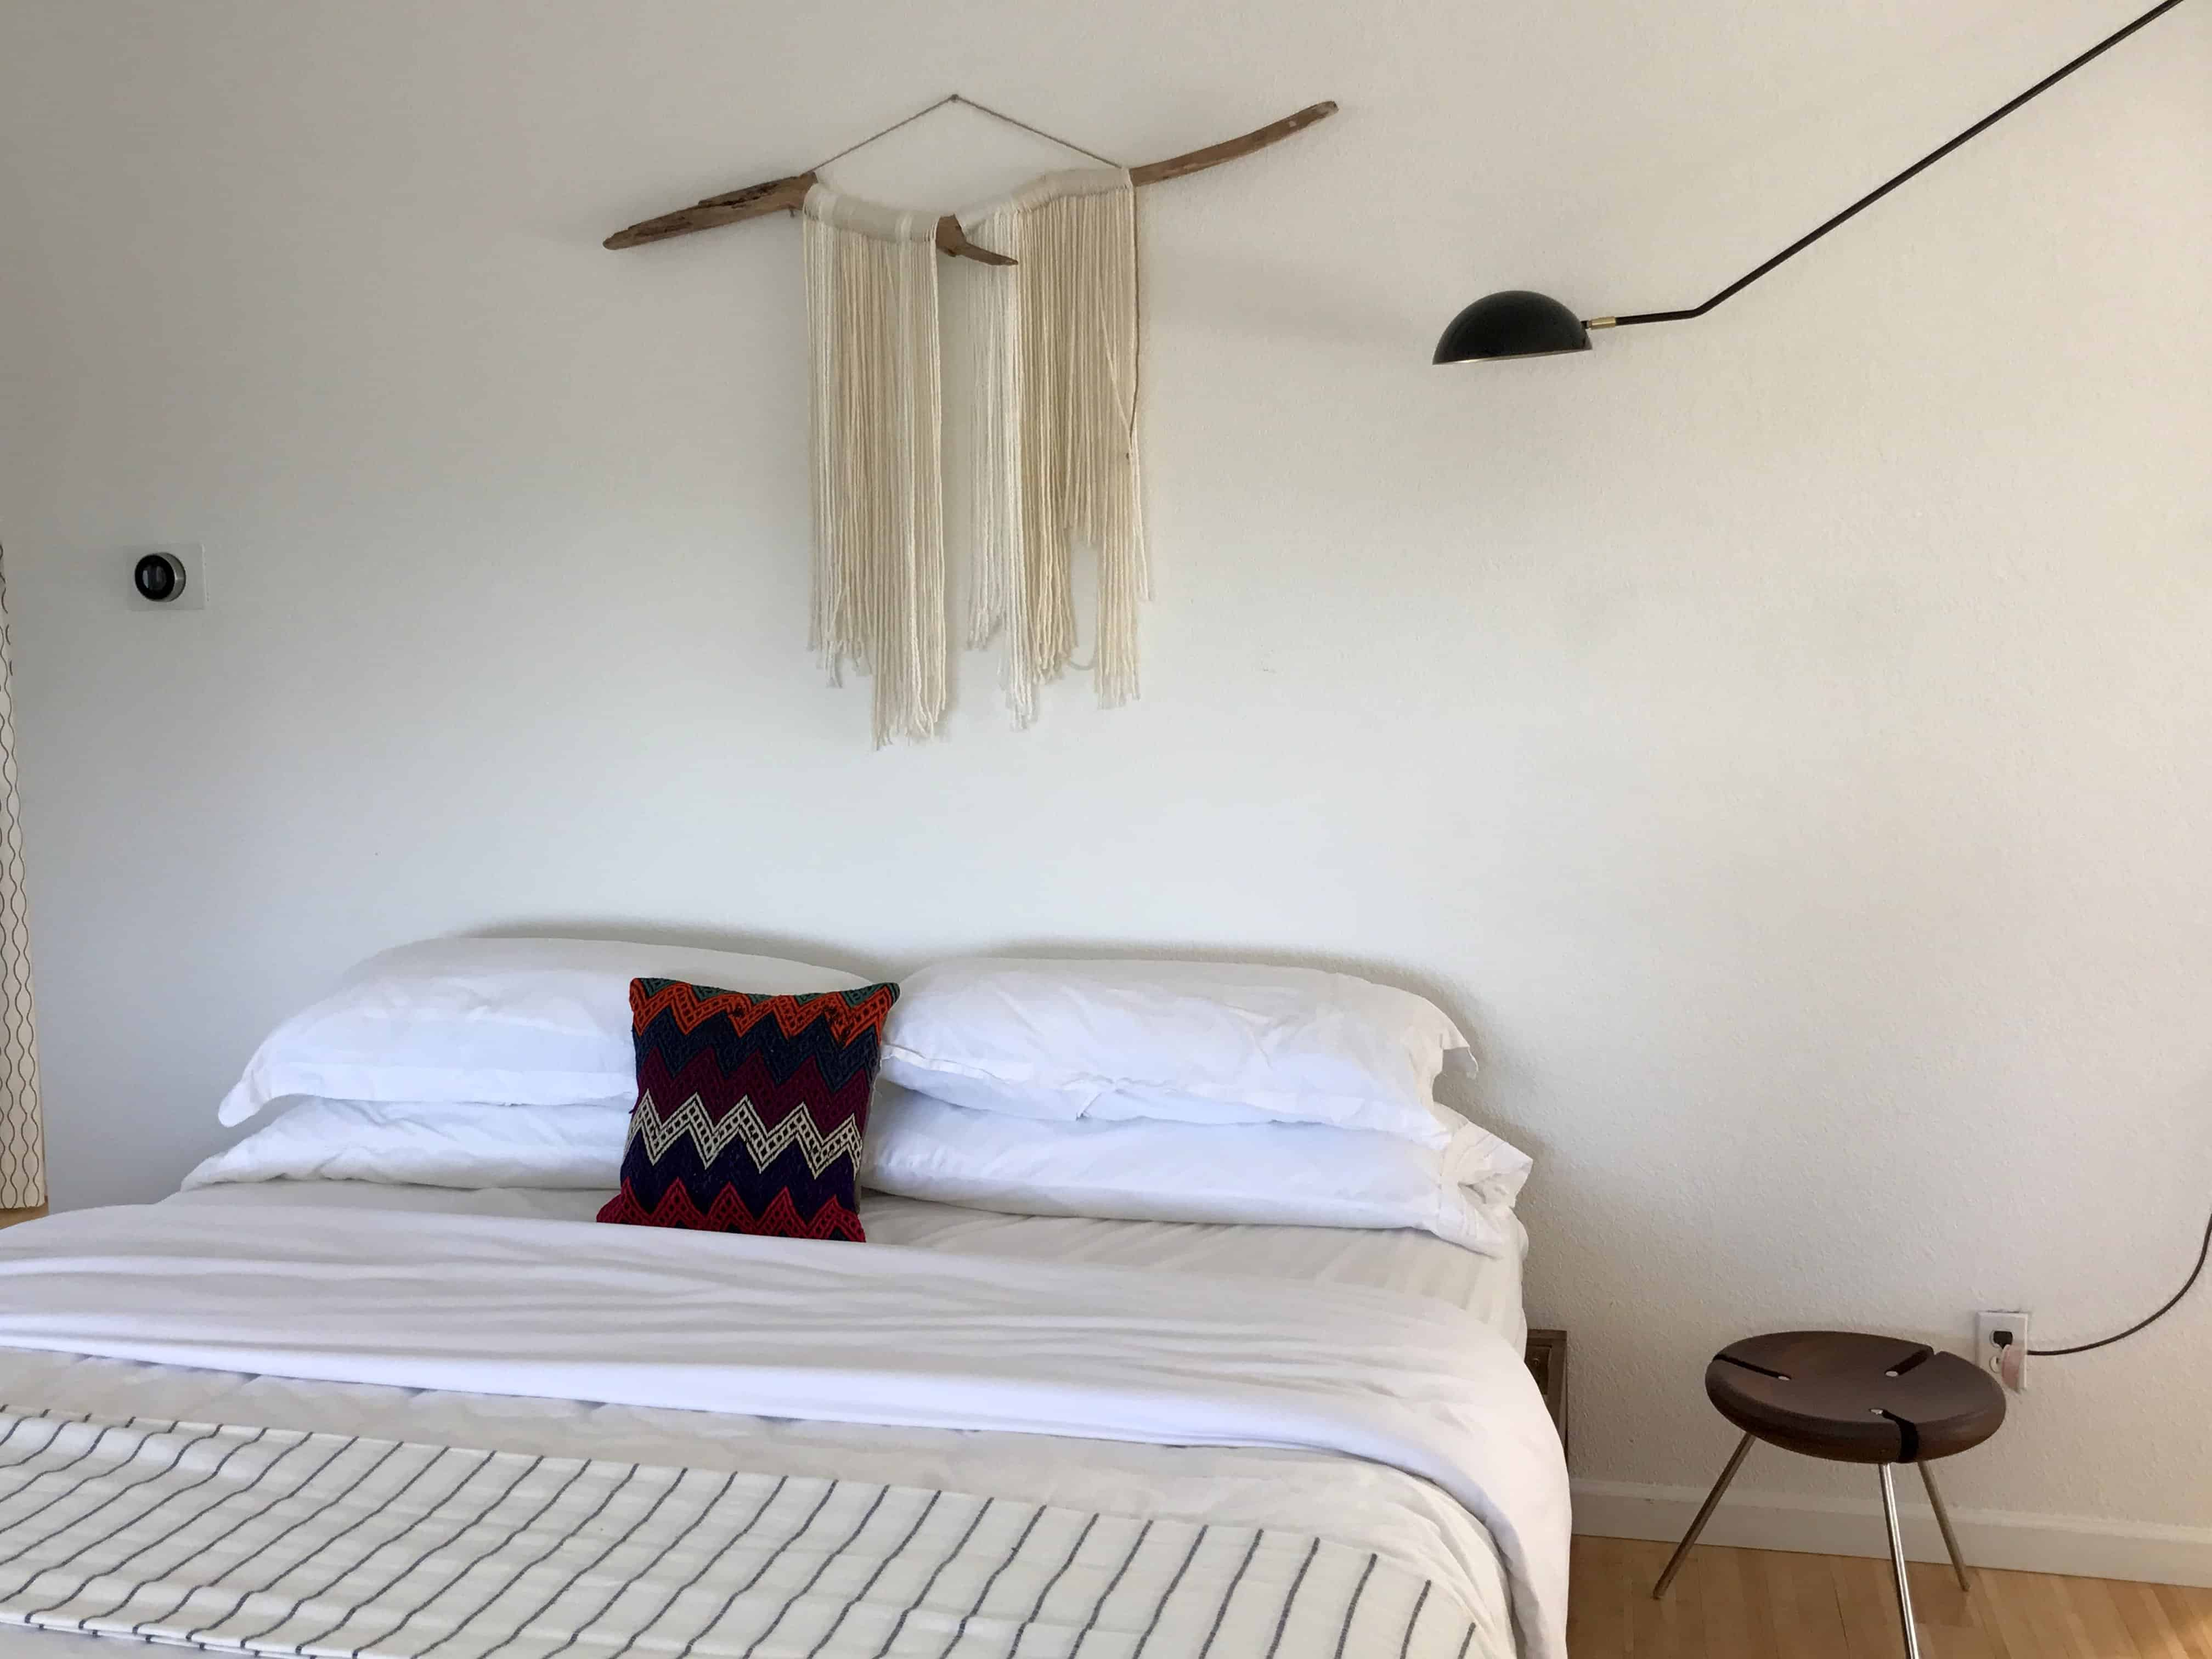 Minimalist Boho Home Decor: Boho-minimalist-bedroom-decor-decorating-macrame